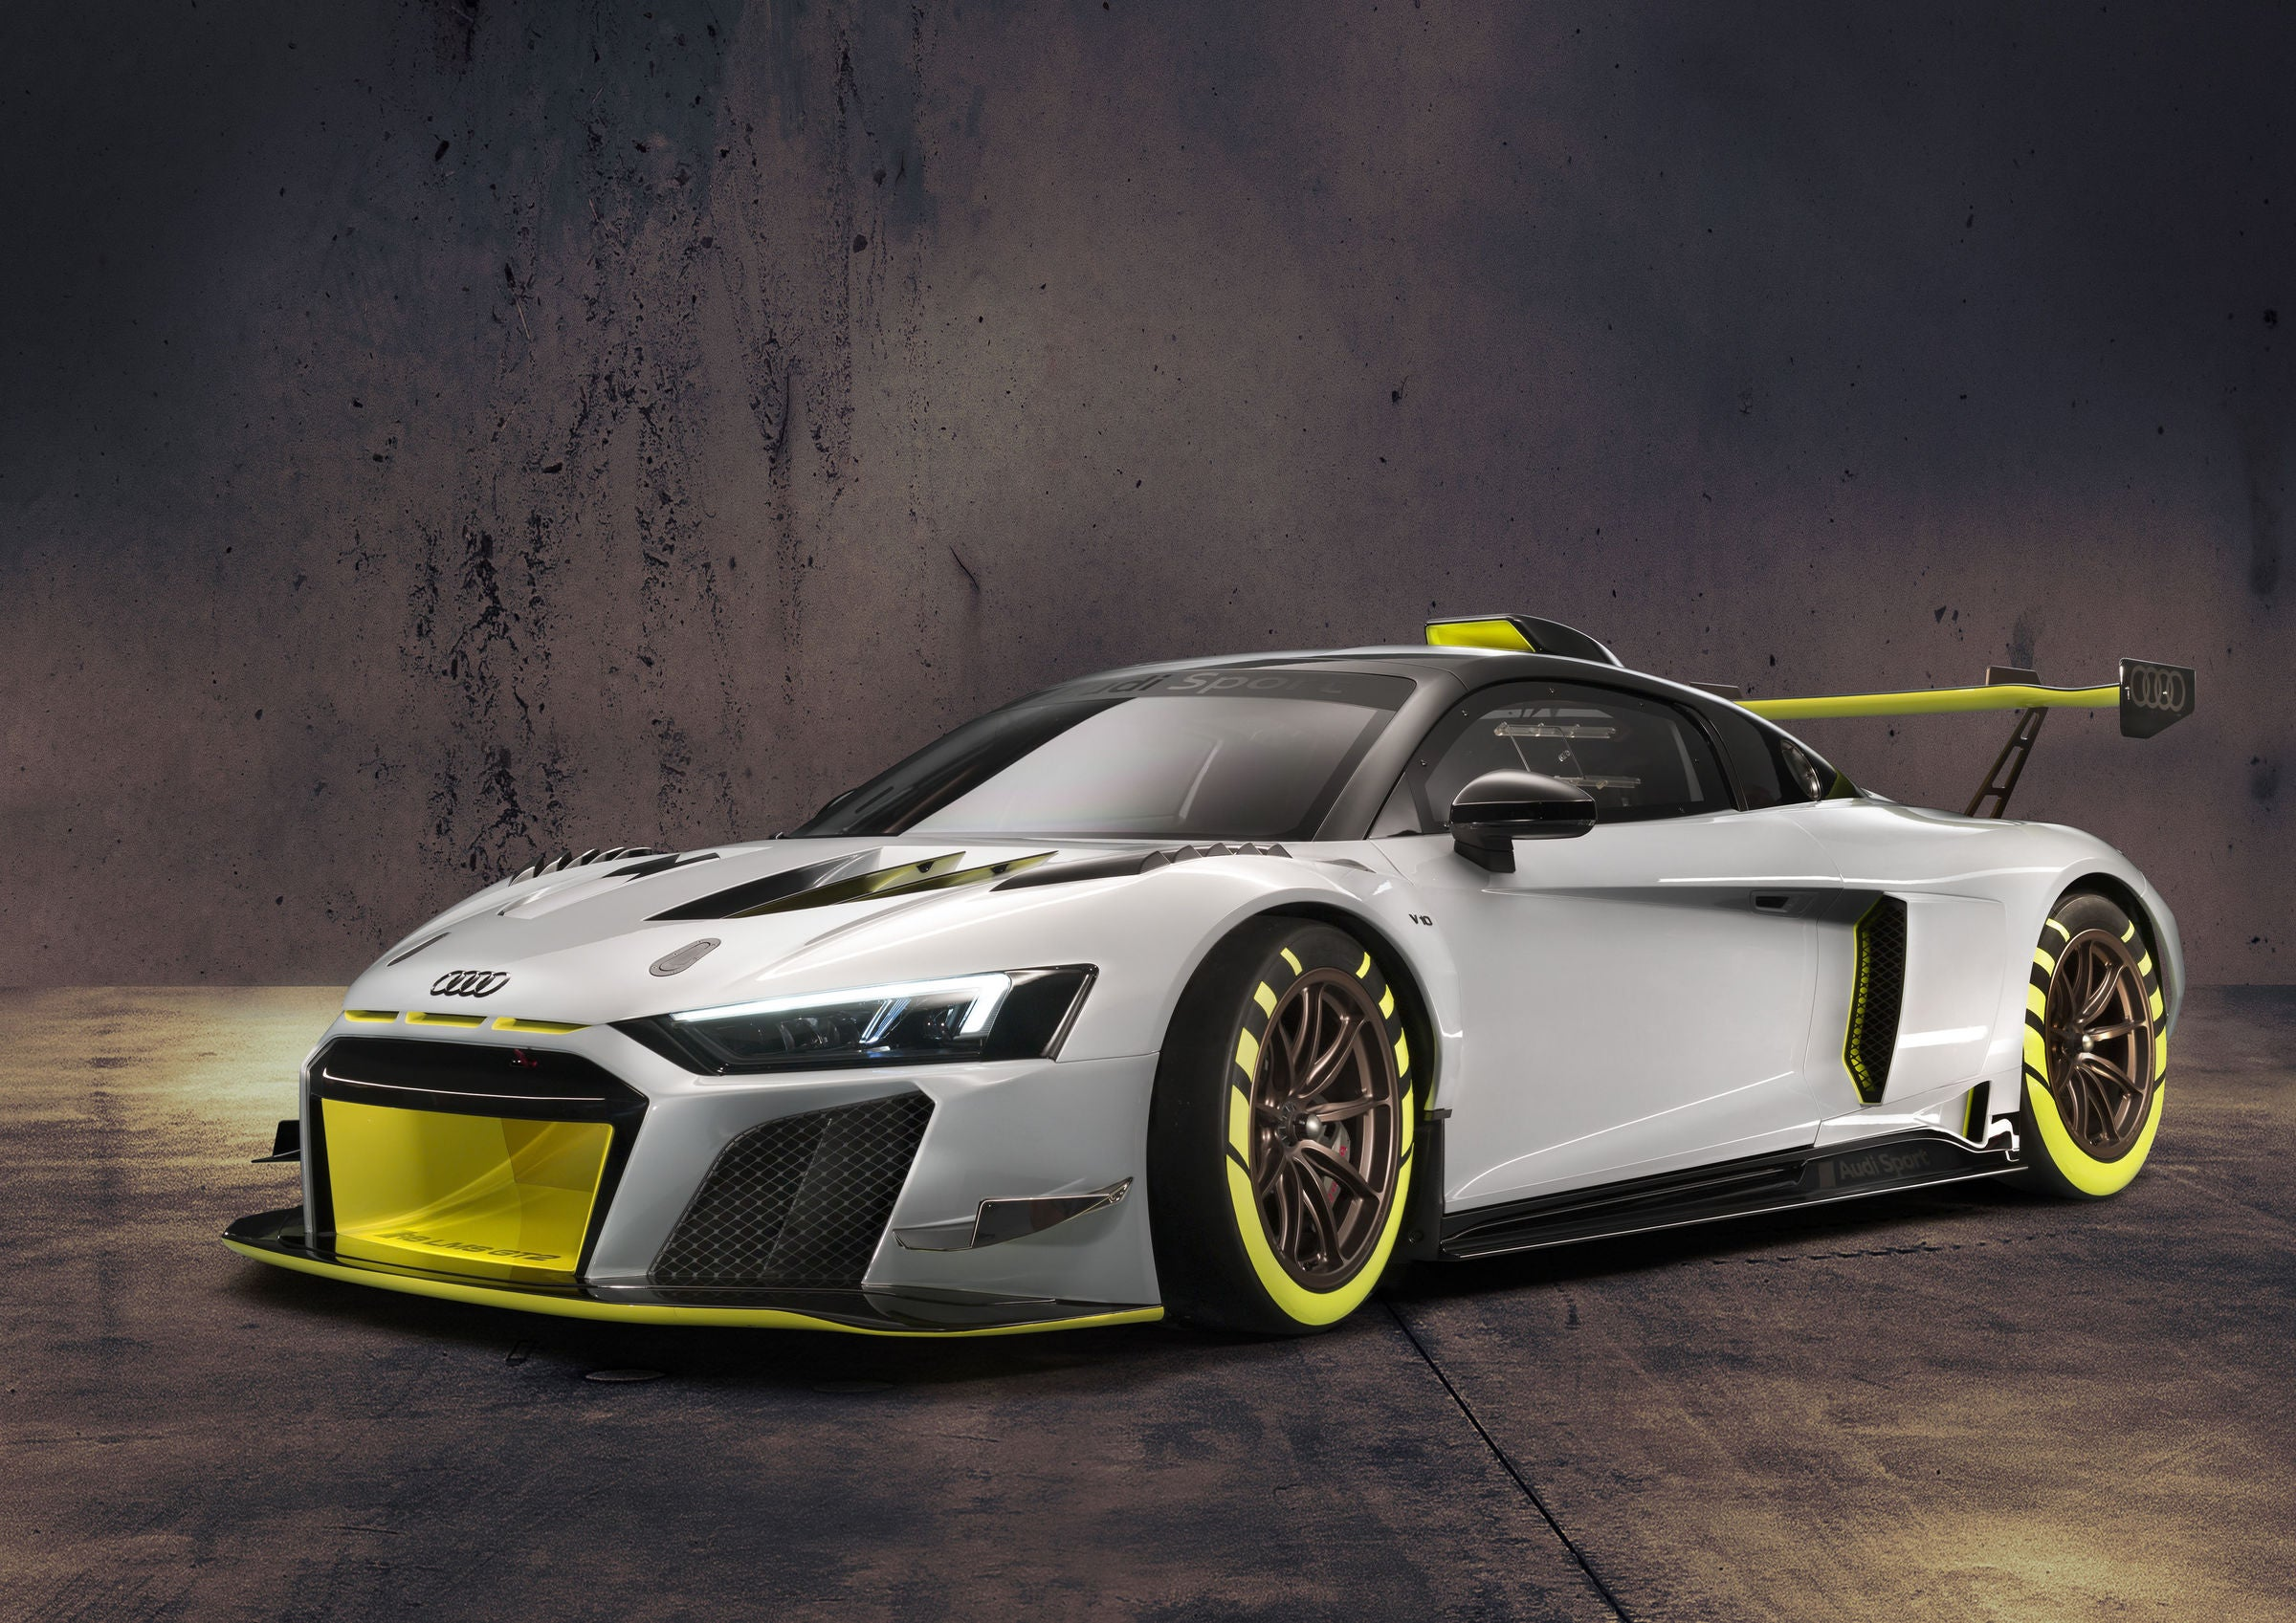 Audi's New R8 LMS GT2 Is Angry About Something | Gizmodo